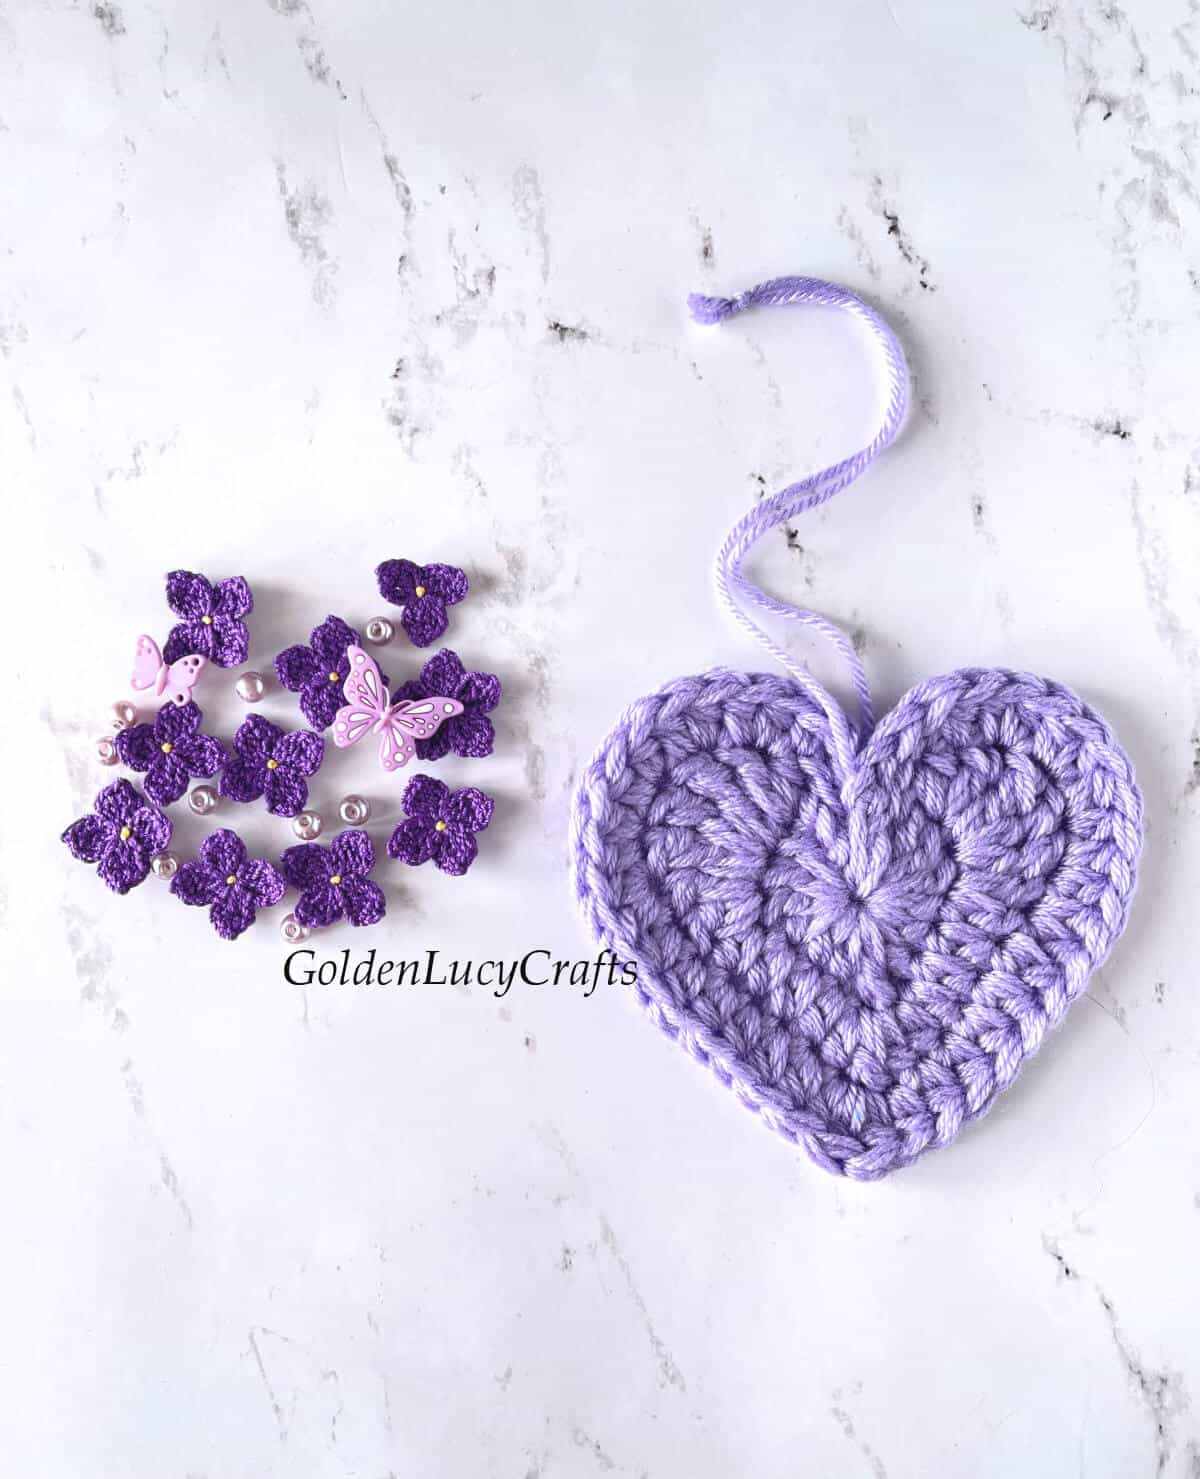 Crocheted heart ornament, crocheted lilac flowers, beads and butterfly buttons laying on a surface.